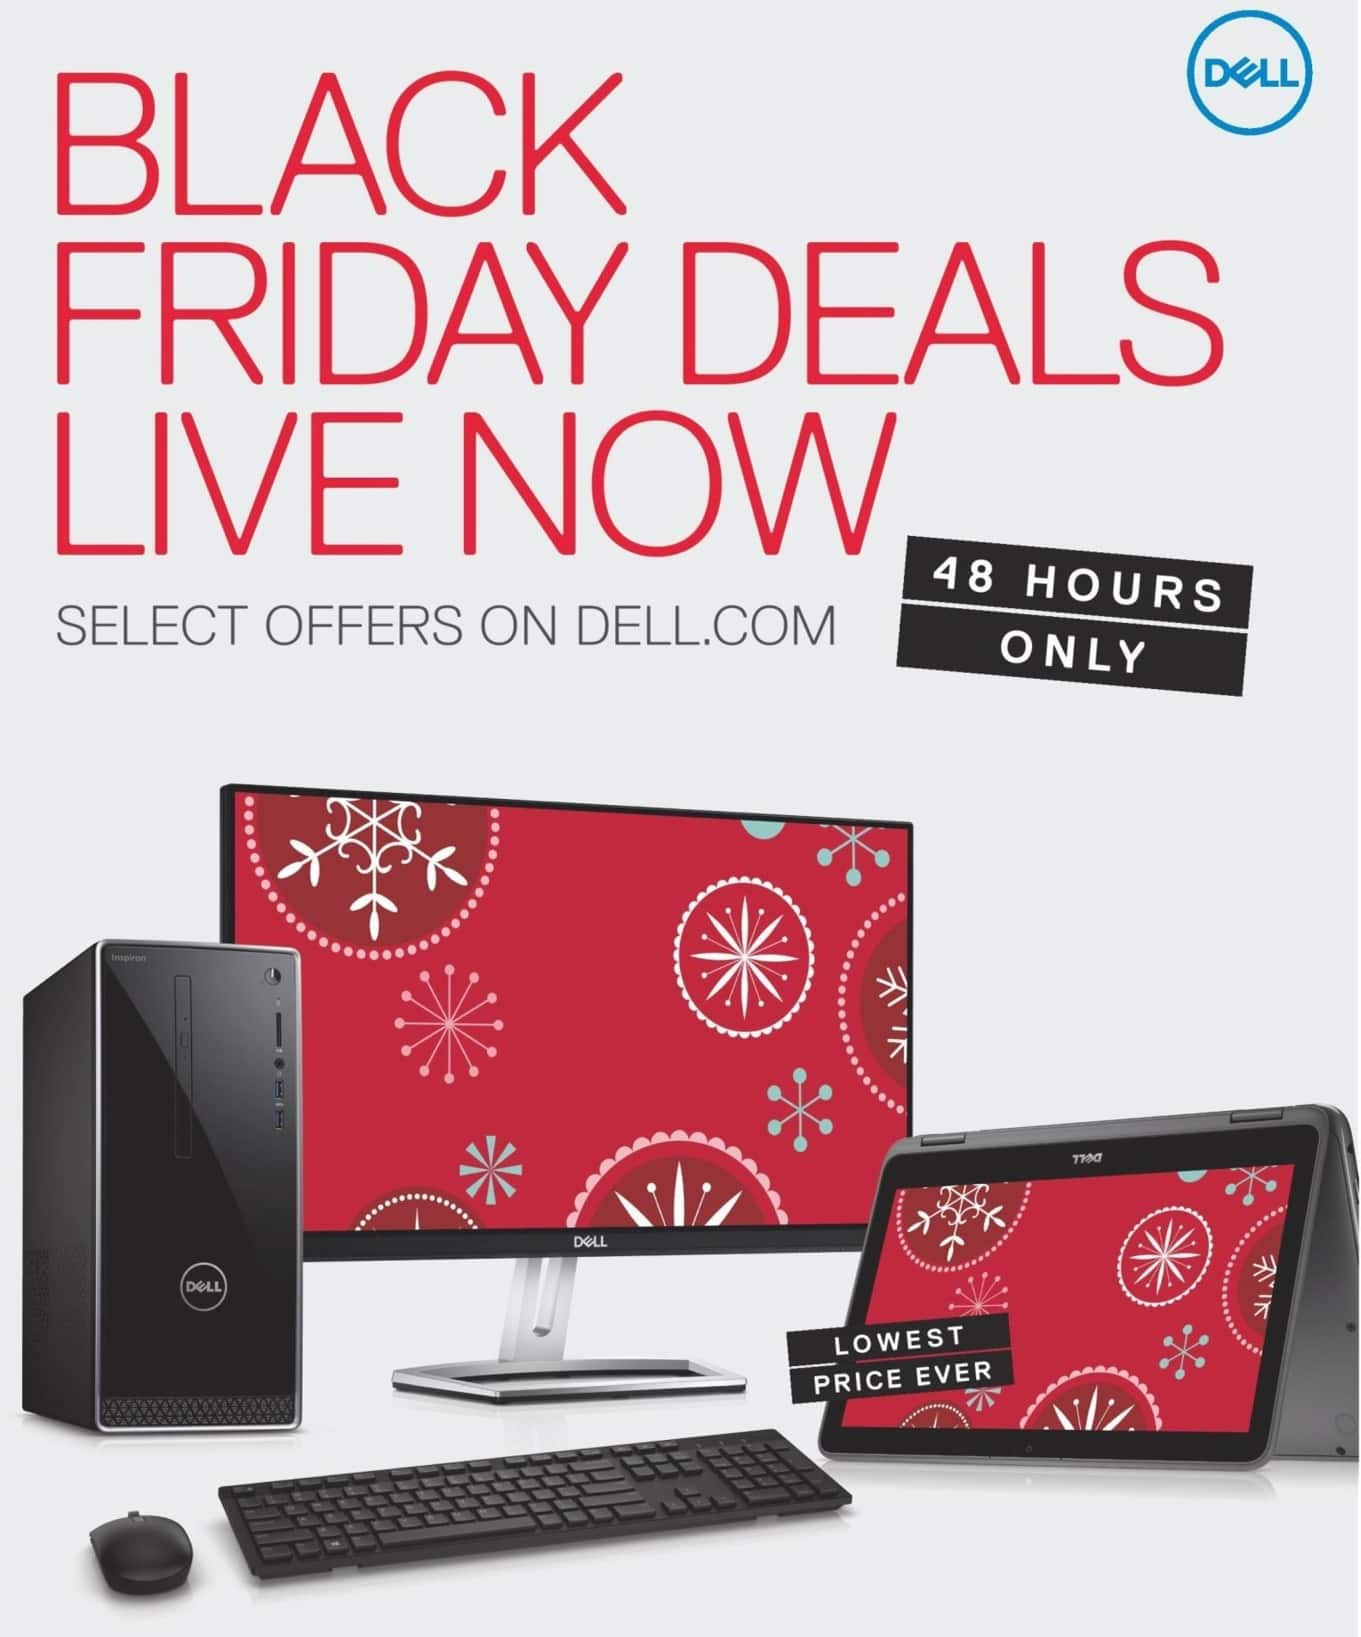 Dell Home & Office Black Friday: Dell Early Access, Select Black Friday Deals - TBA